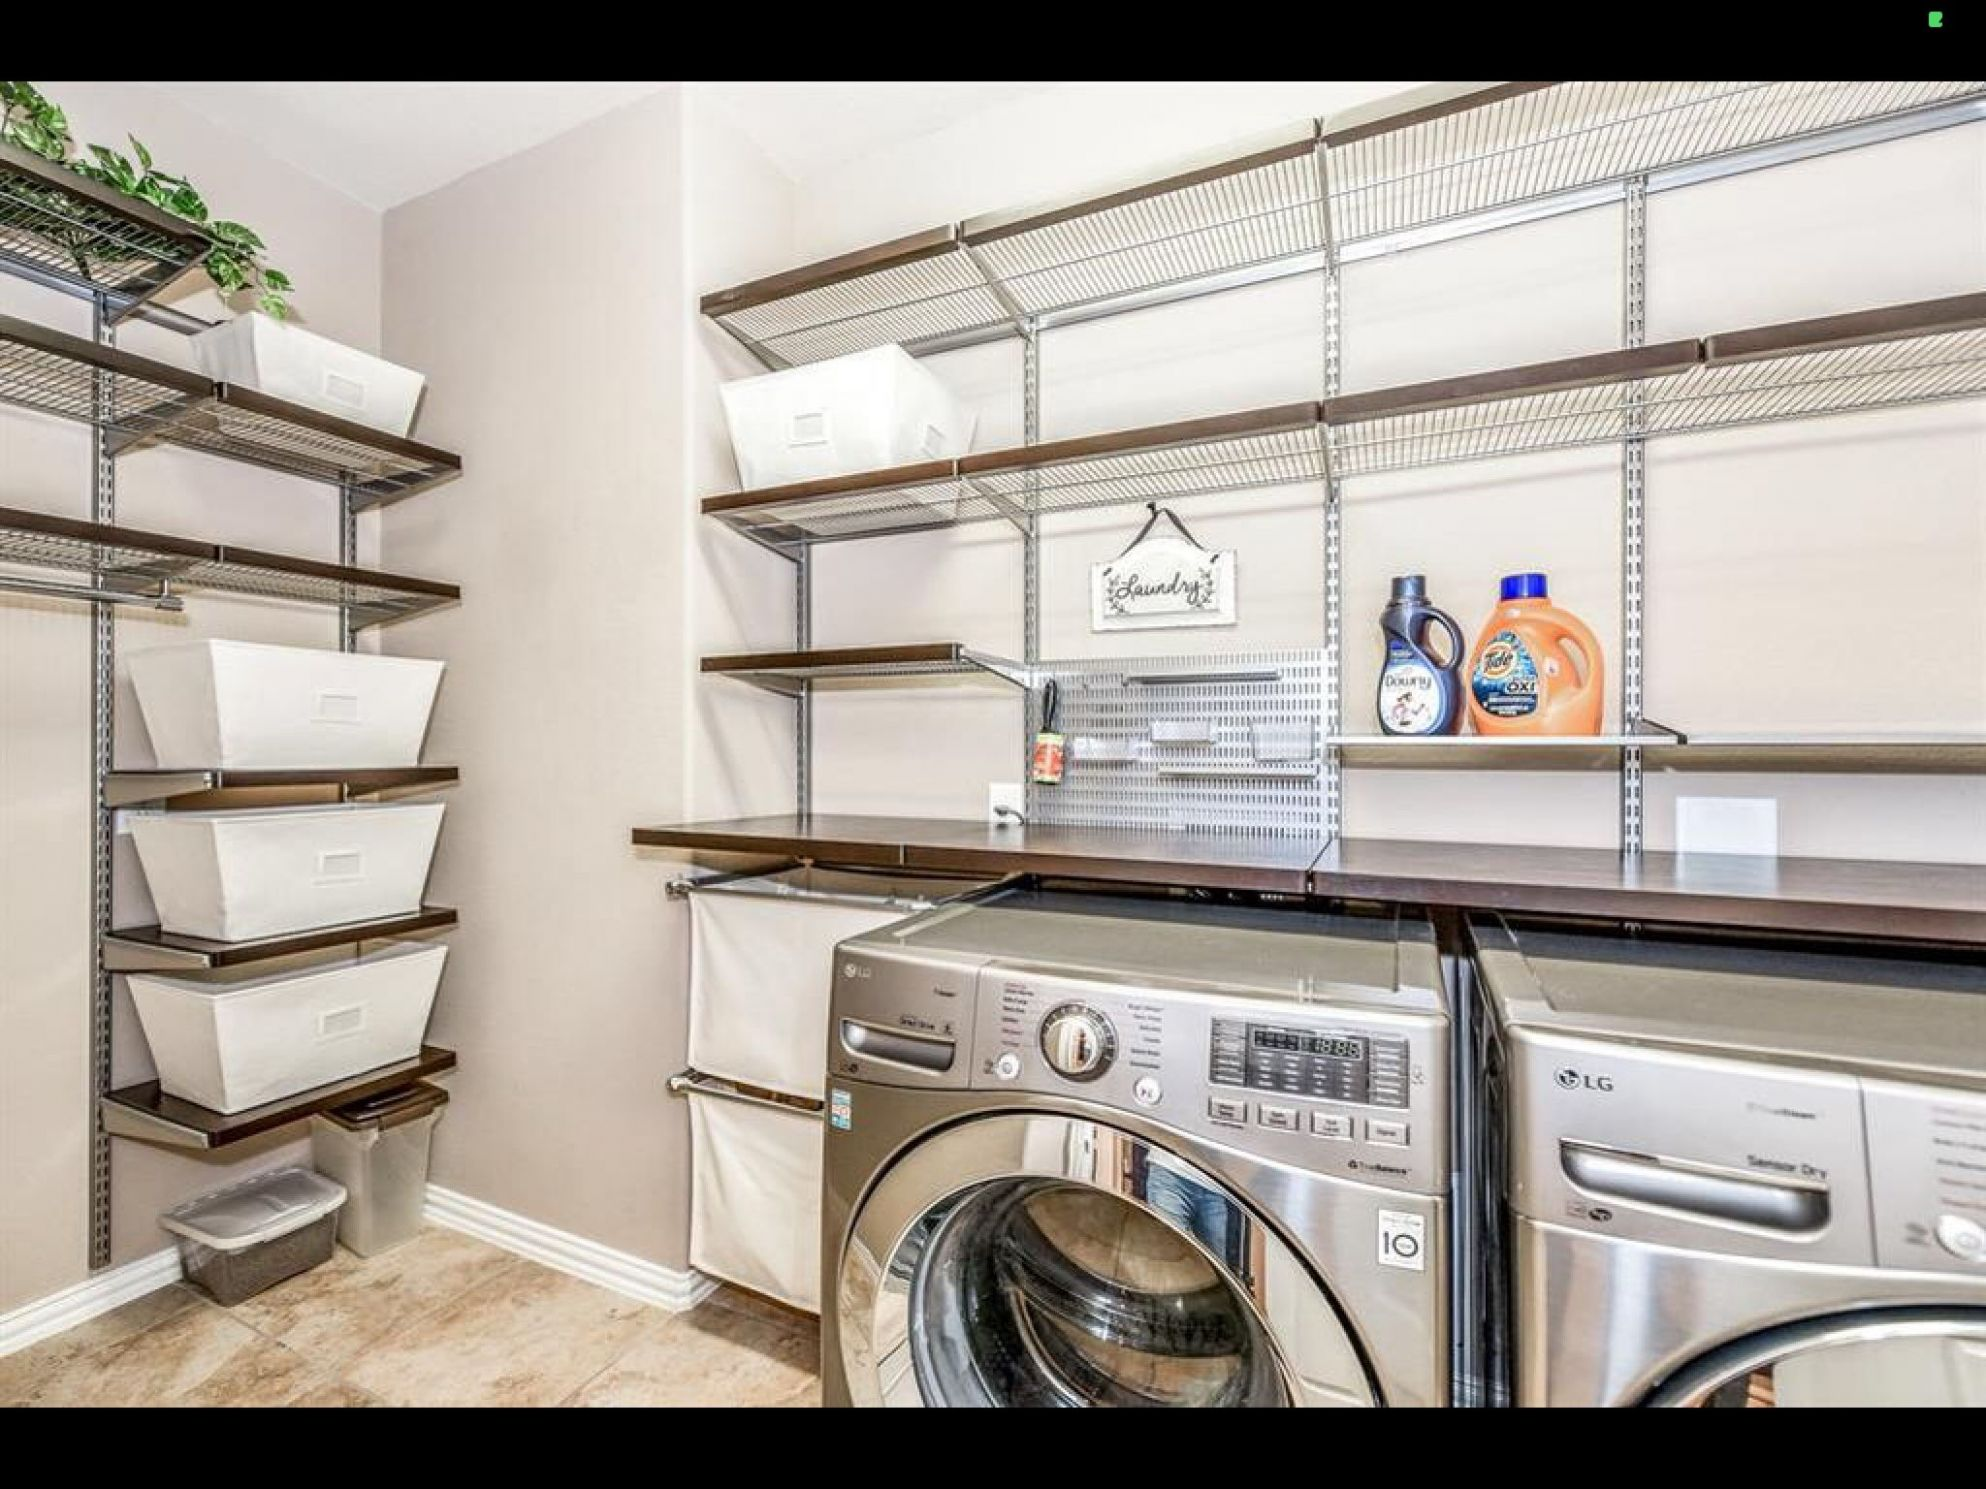 designed my laundry room with elfa shelving in 12 | Interior ...